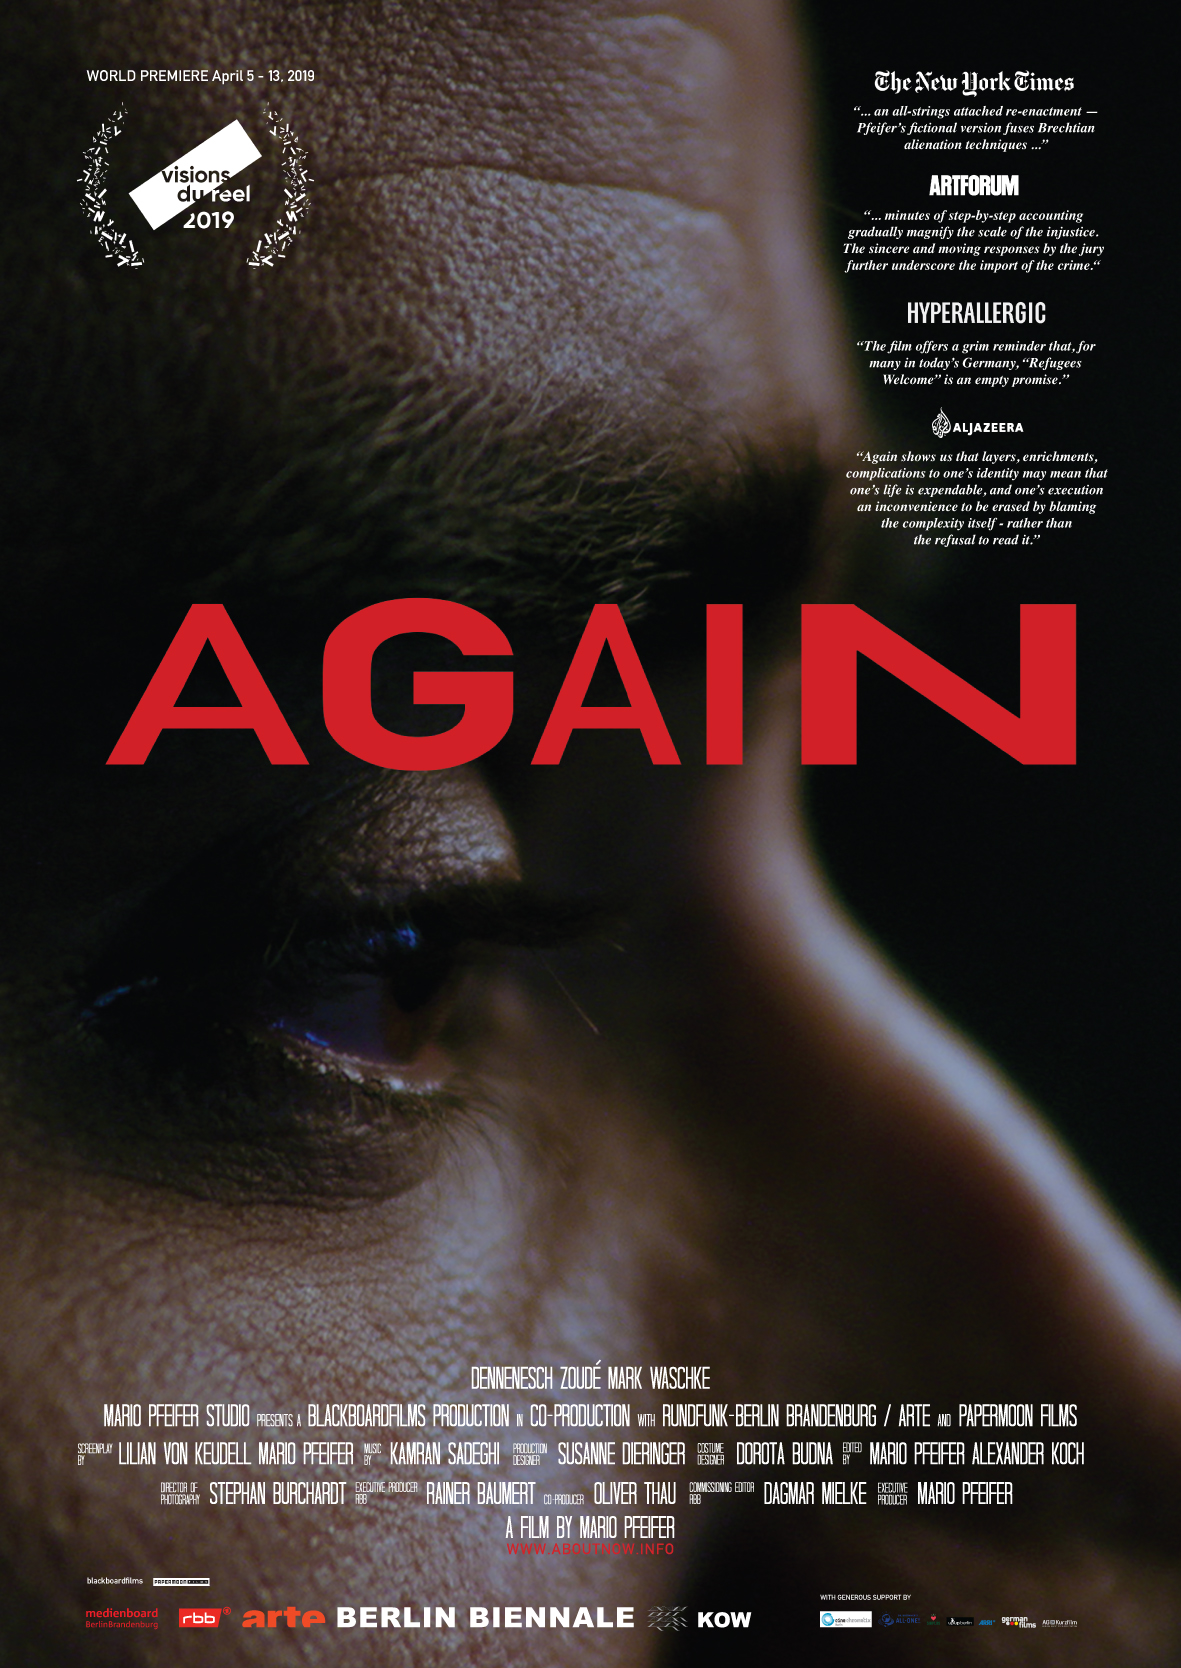 AGAIN_POSTER_VDR_2019_WEB_blackboardfilms_2019.jpg